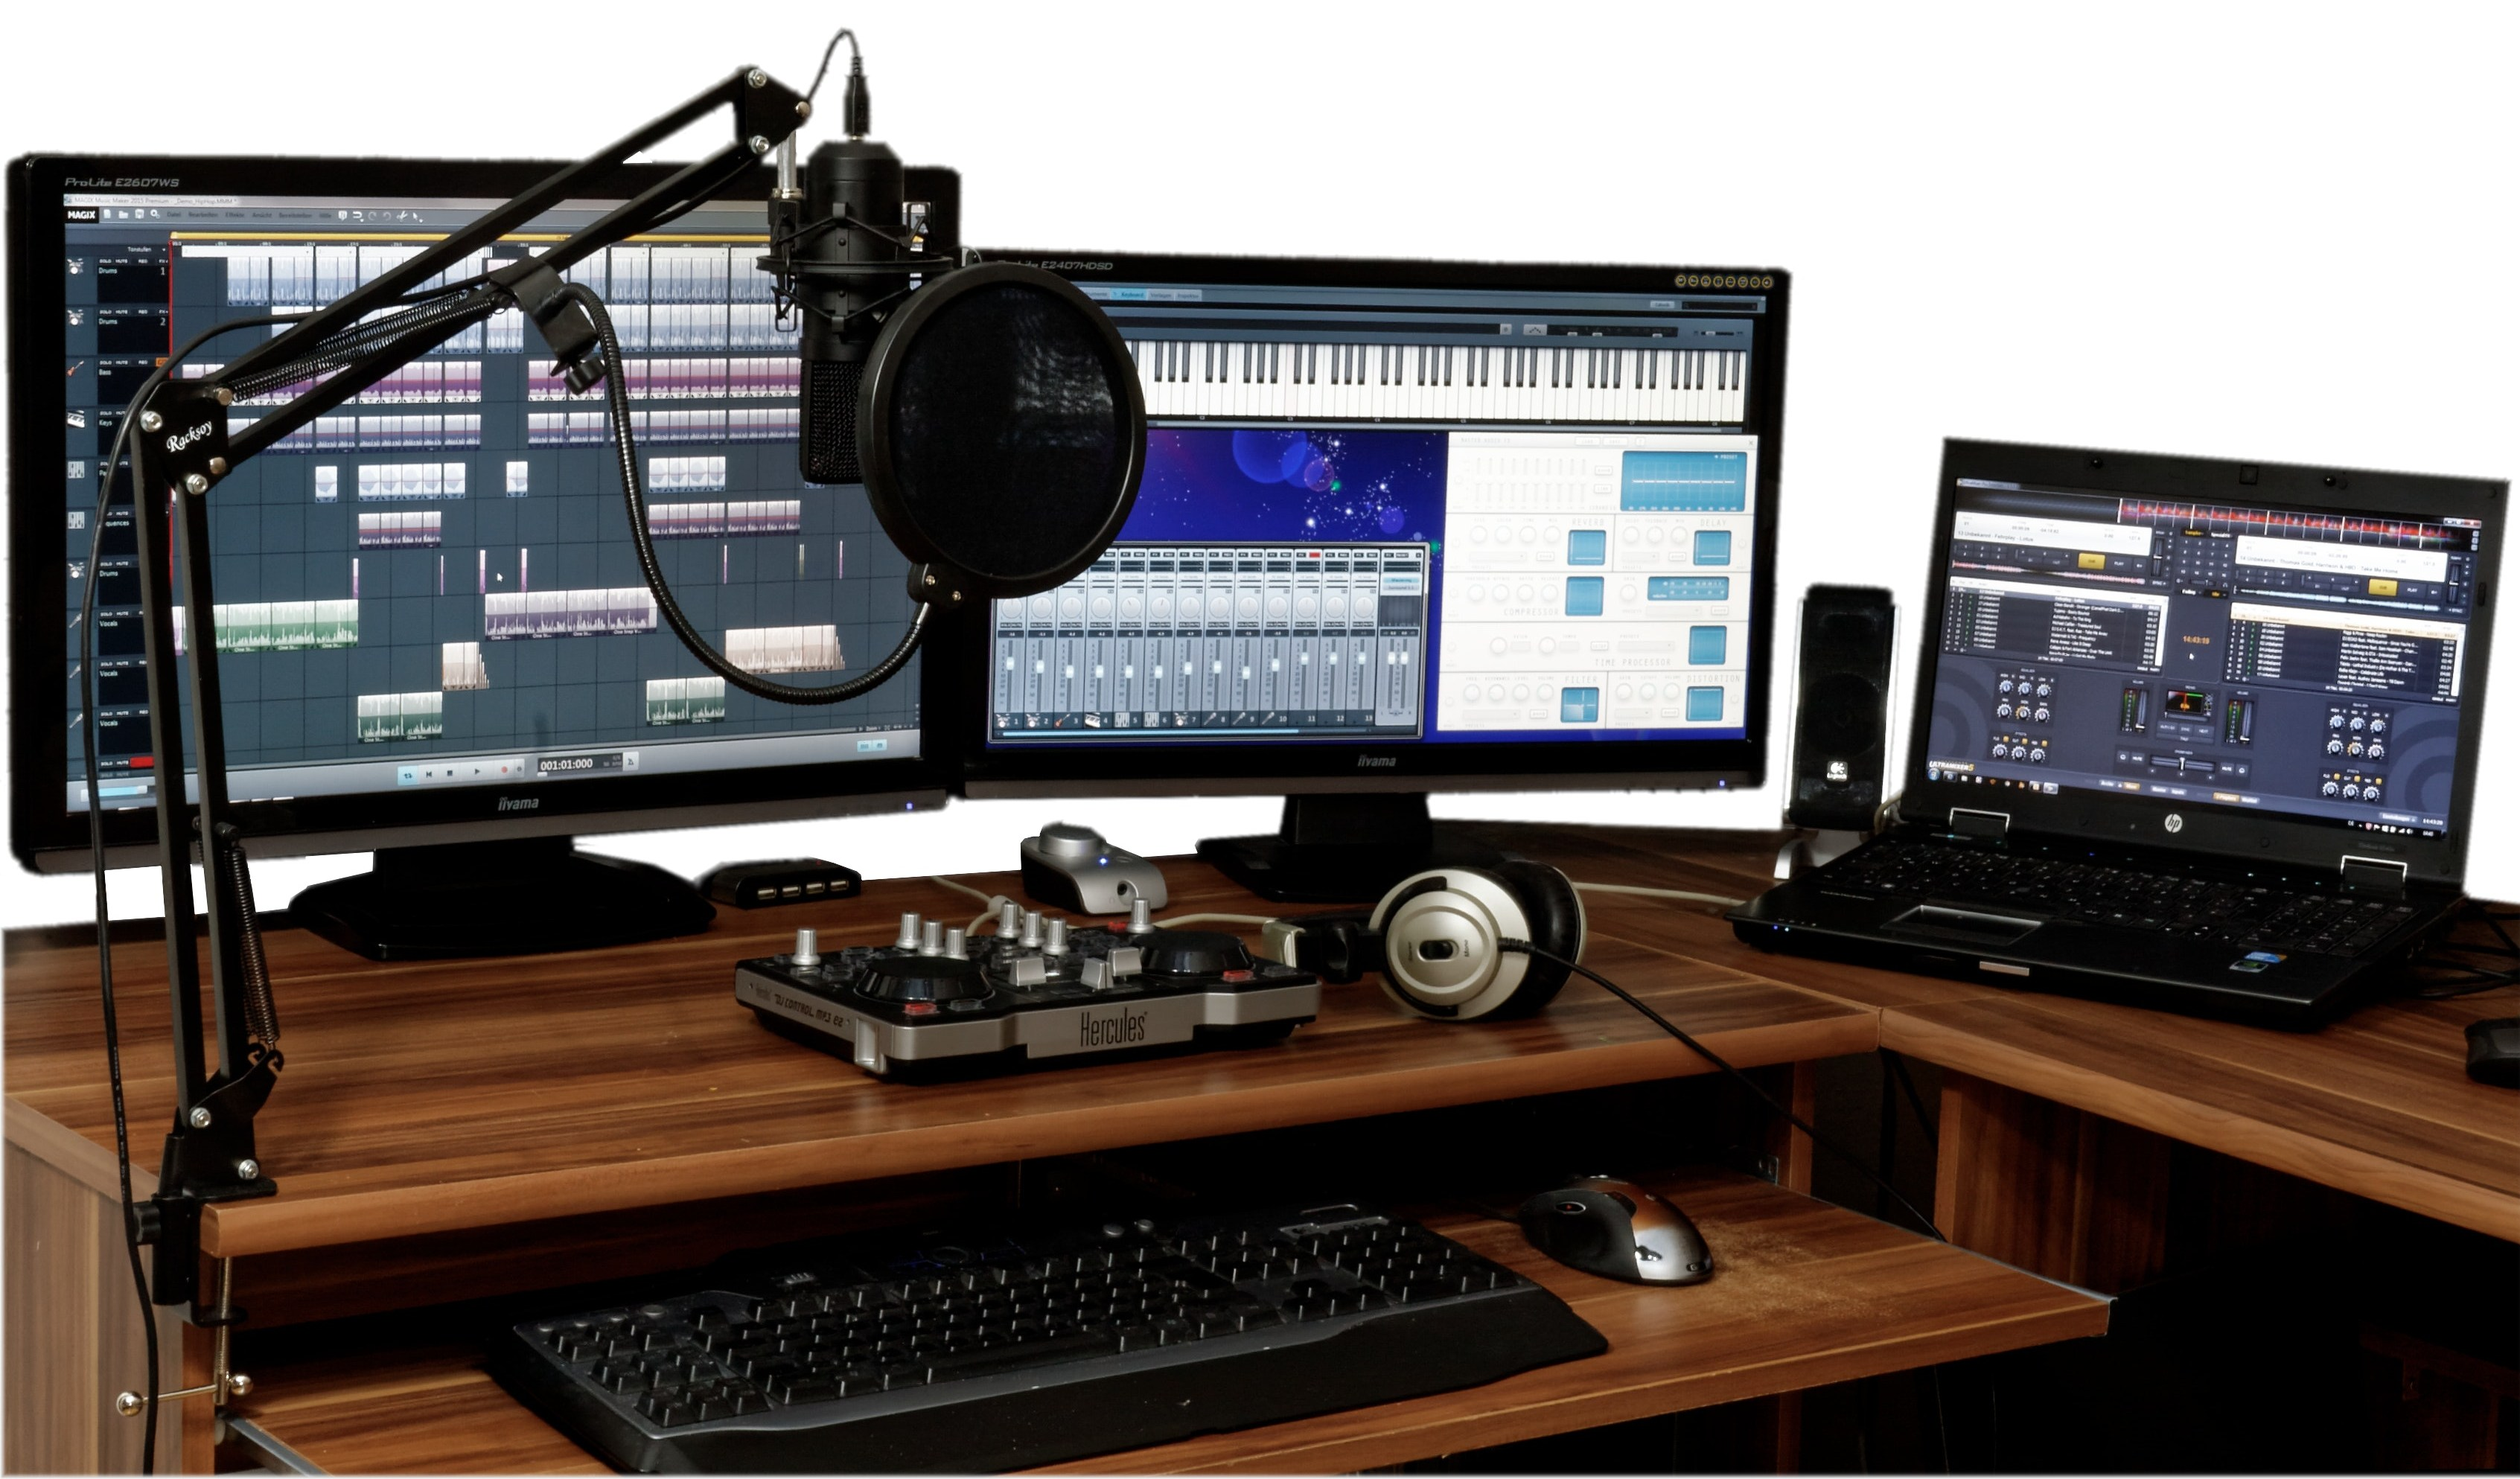 Sound Engineering is one of the branches of engineering discipline which deals with the study of music, movies and theater in recording, manipulation, mixing and reproduction.